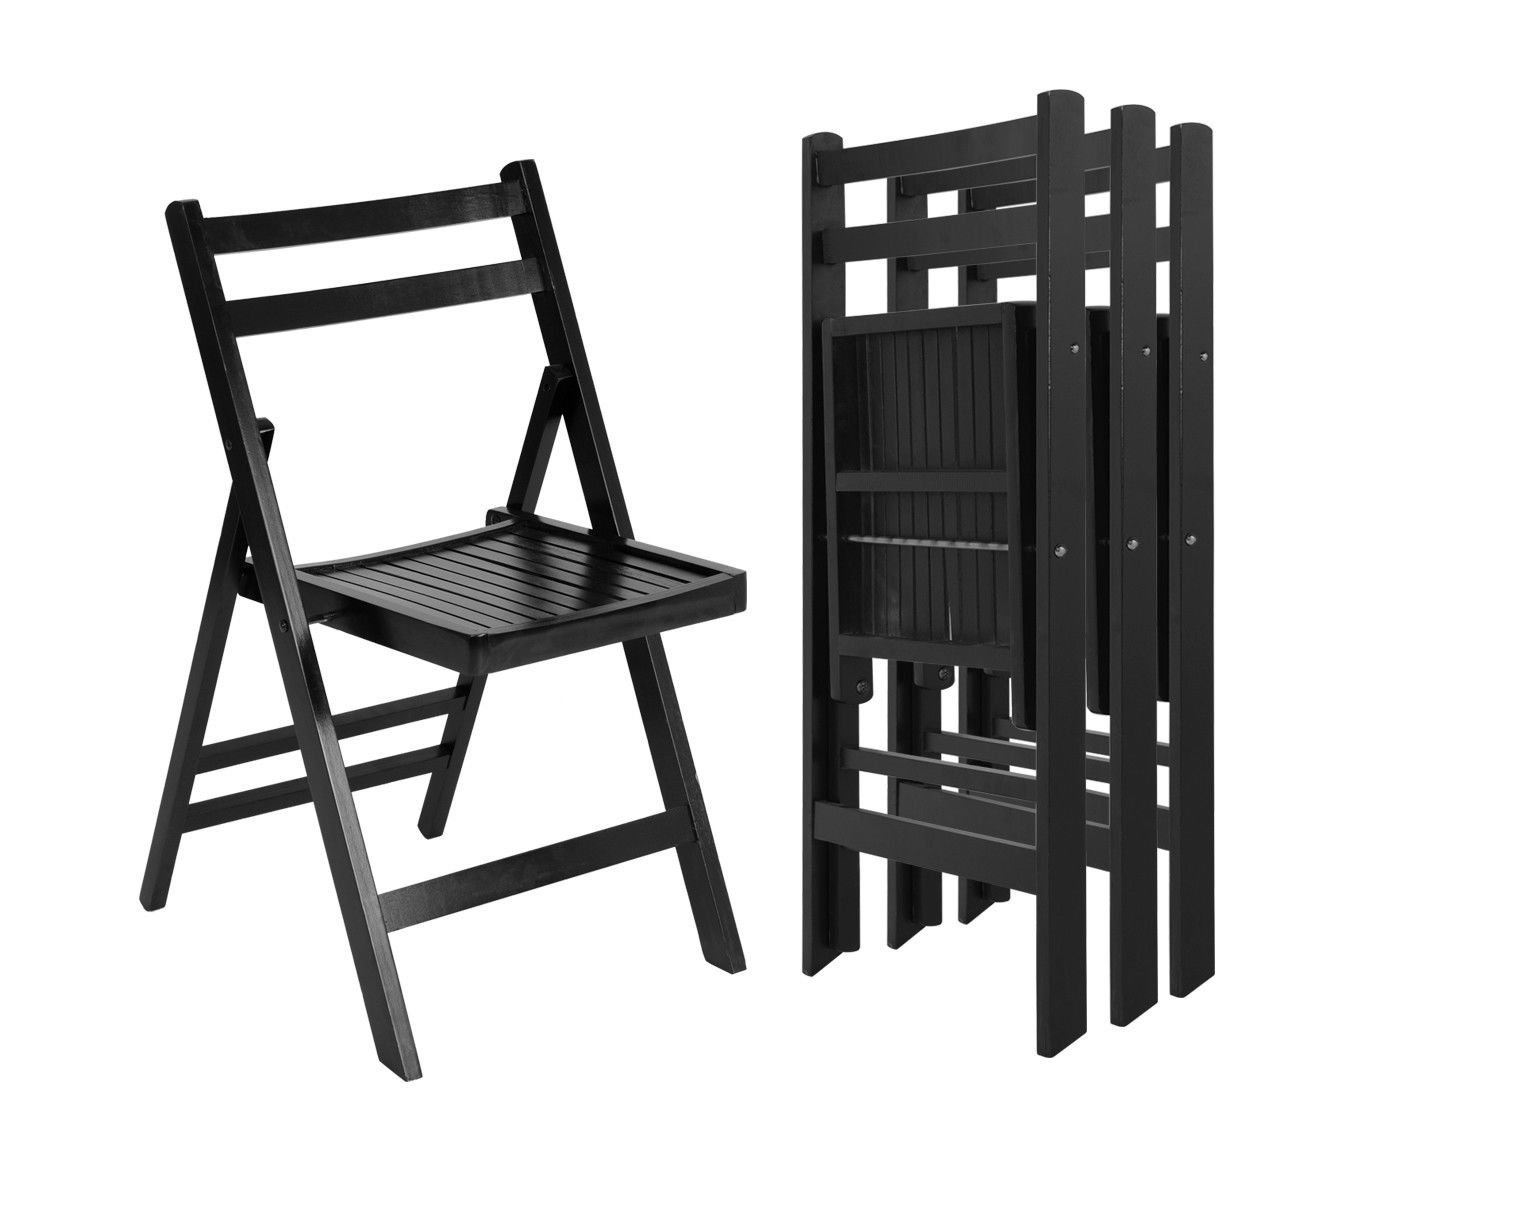 Top 10 Best Wooden Folding Chairs in 2019